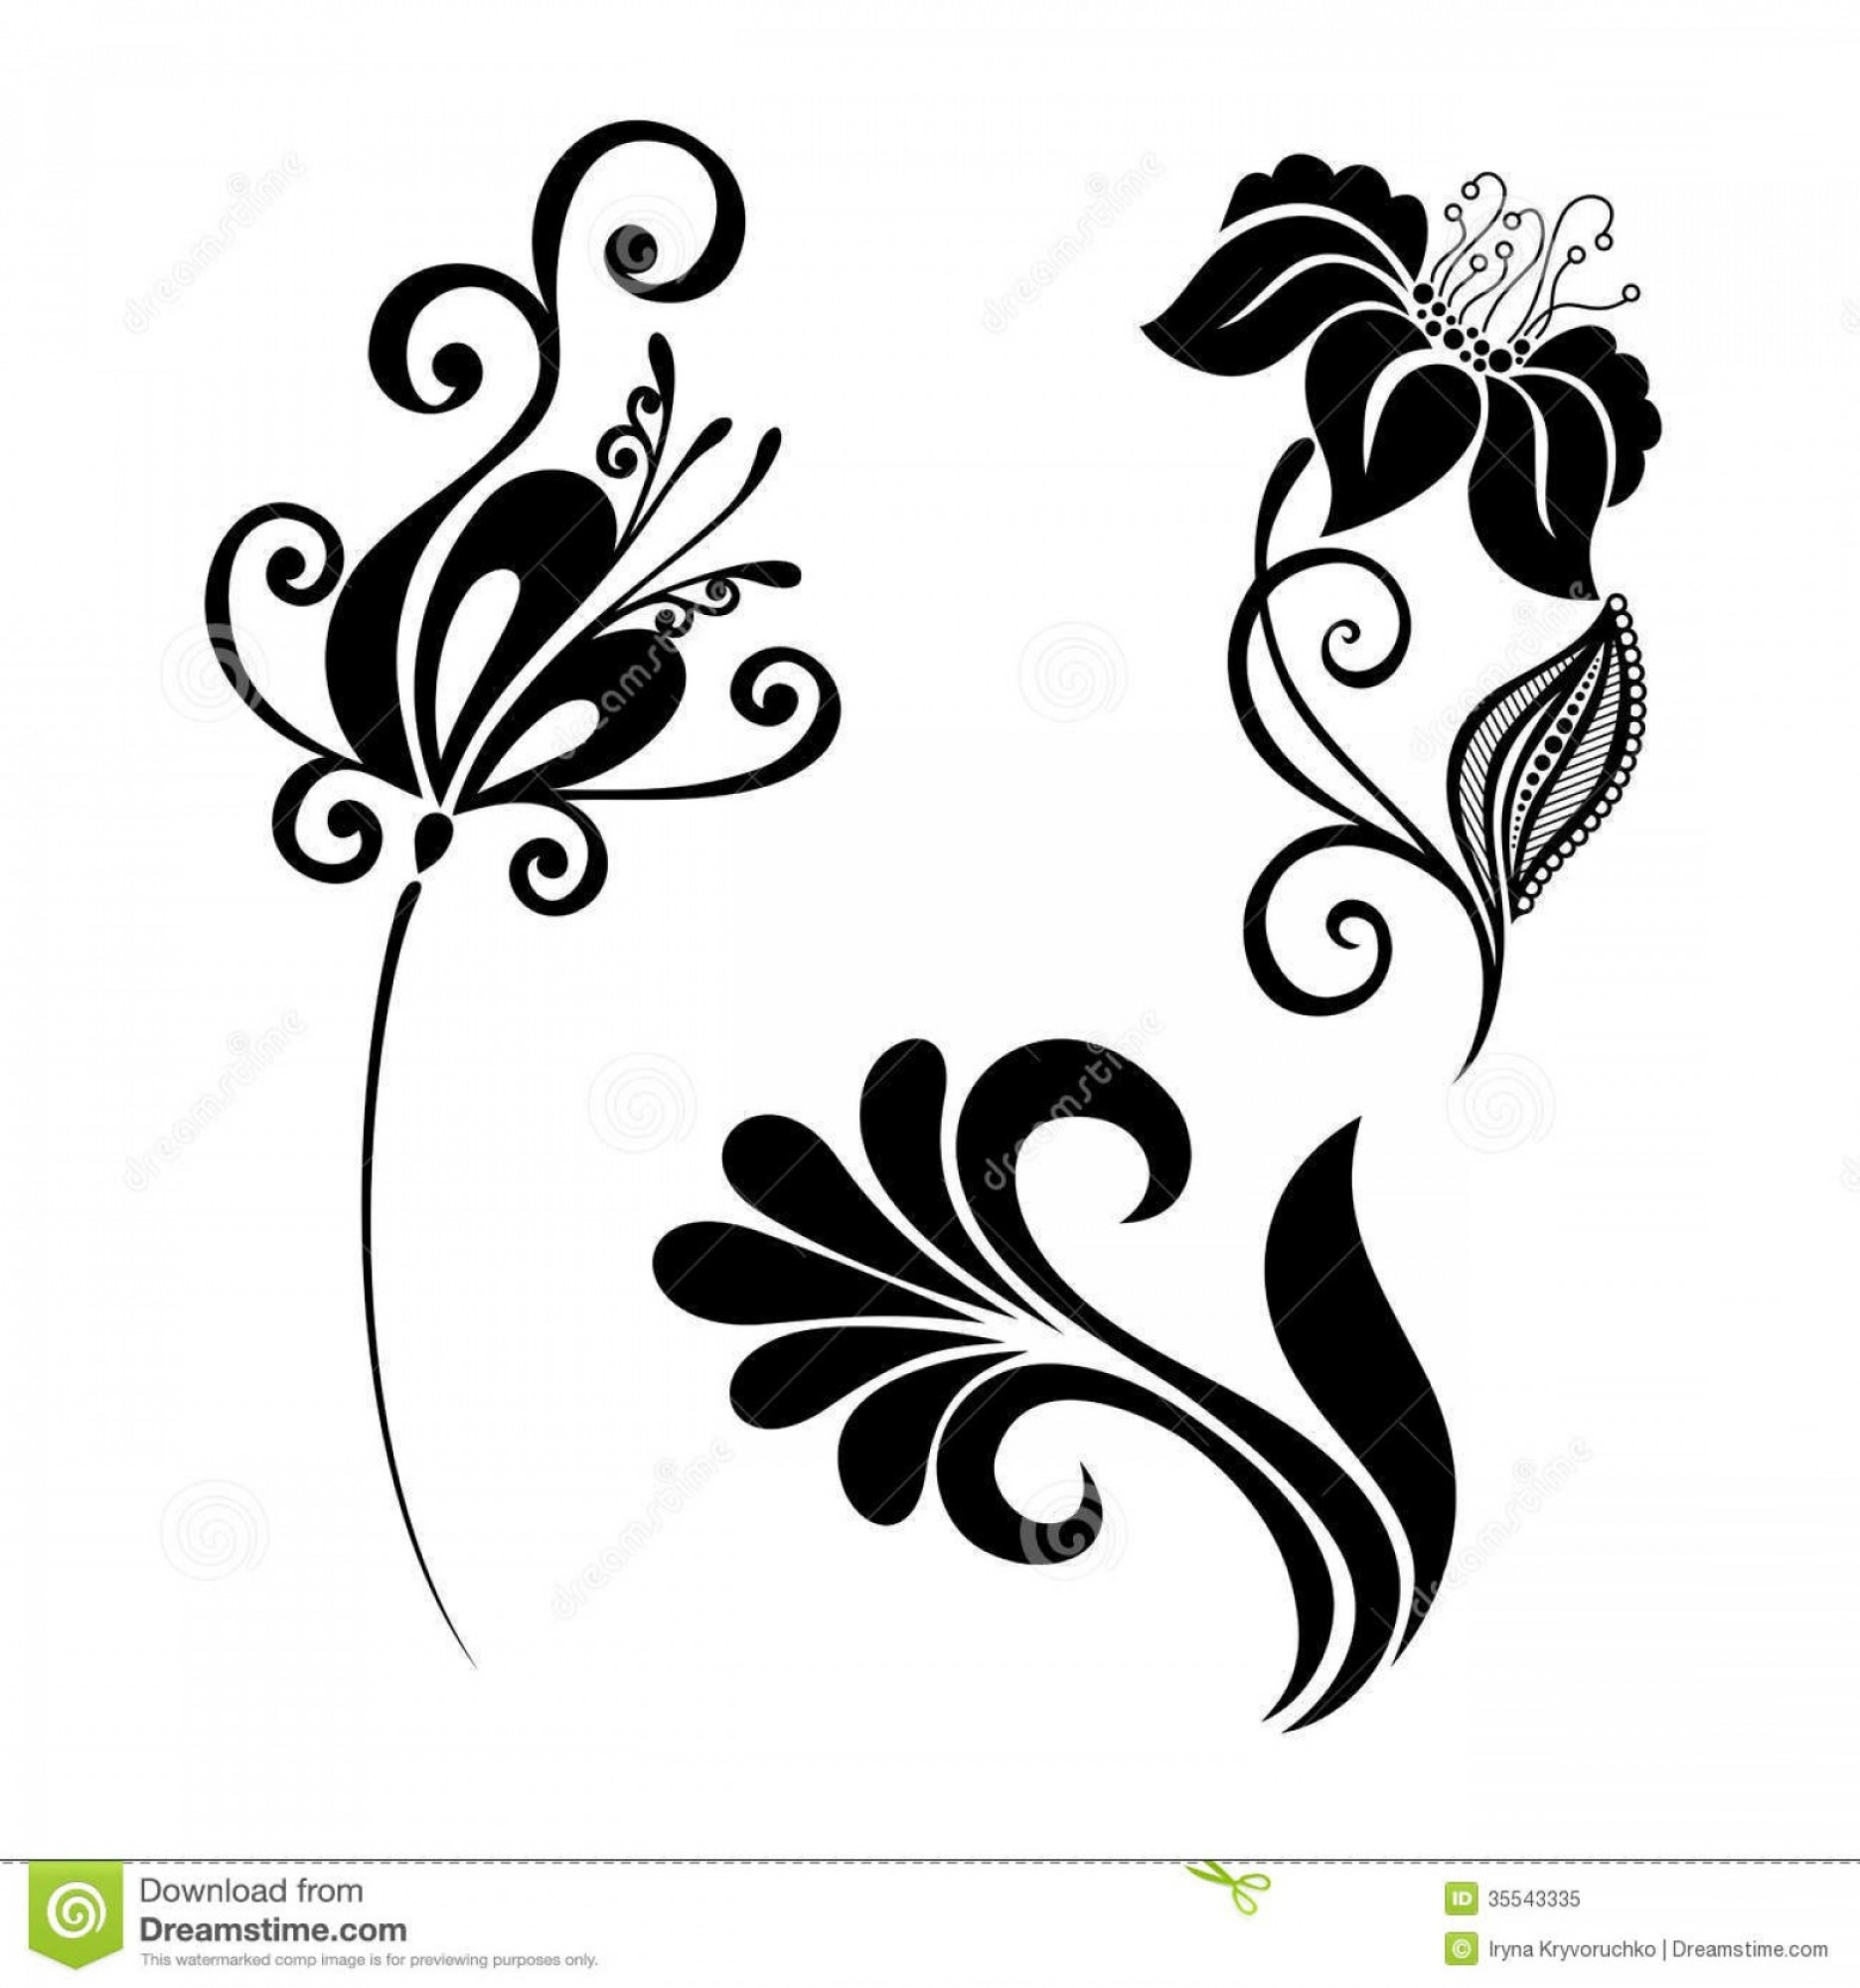 Beautiful Flowers Vector Graphic: Royalty Free Stock Photo Set Beautiful Deco Flowers Vector Patterned Design Image